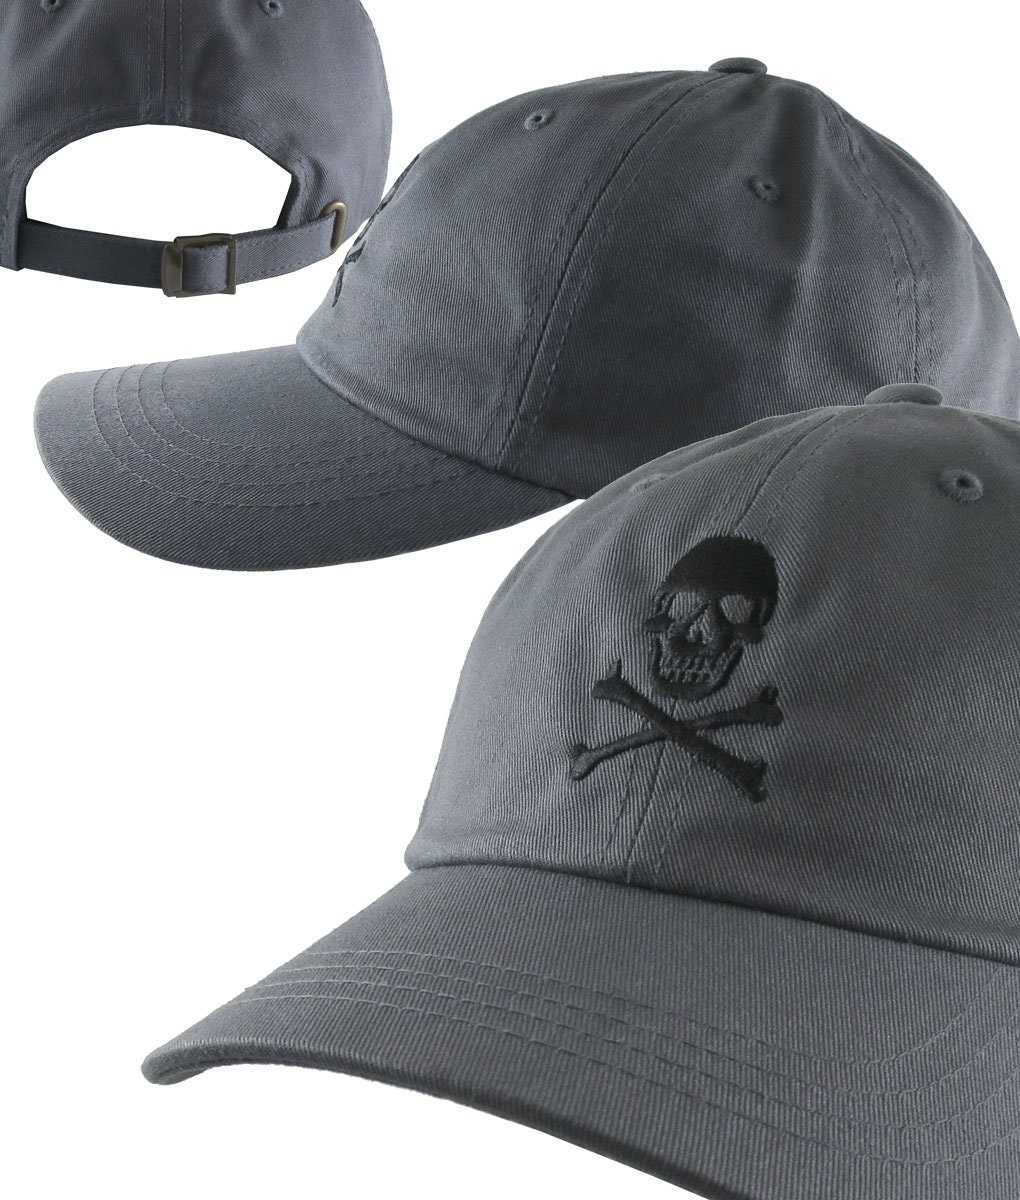 cd1356ea Custom Skull Crossbones Pirate Your Color Choice Embroidery on Your  Selection of 21 Adjustable Unstructured Baseball Caps Dad Hat Style